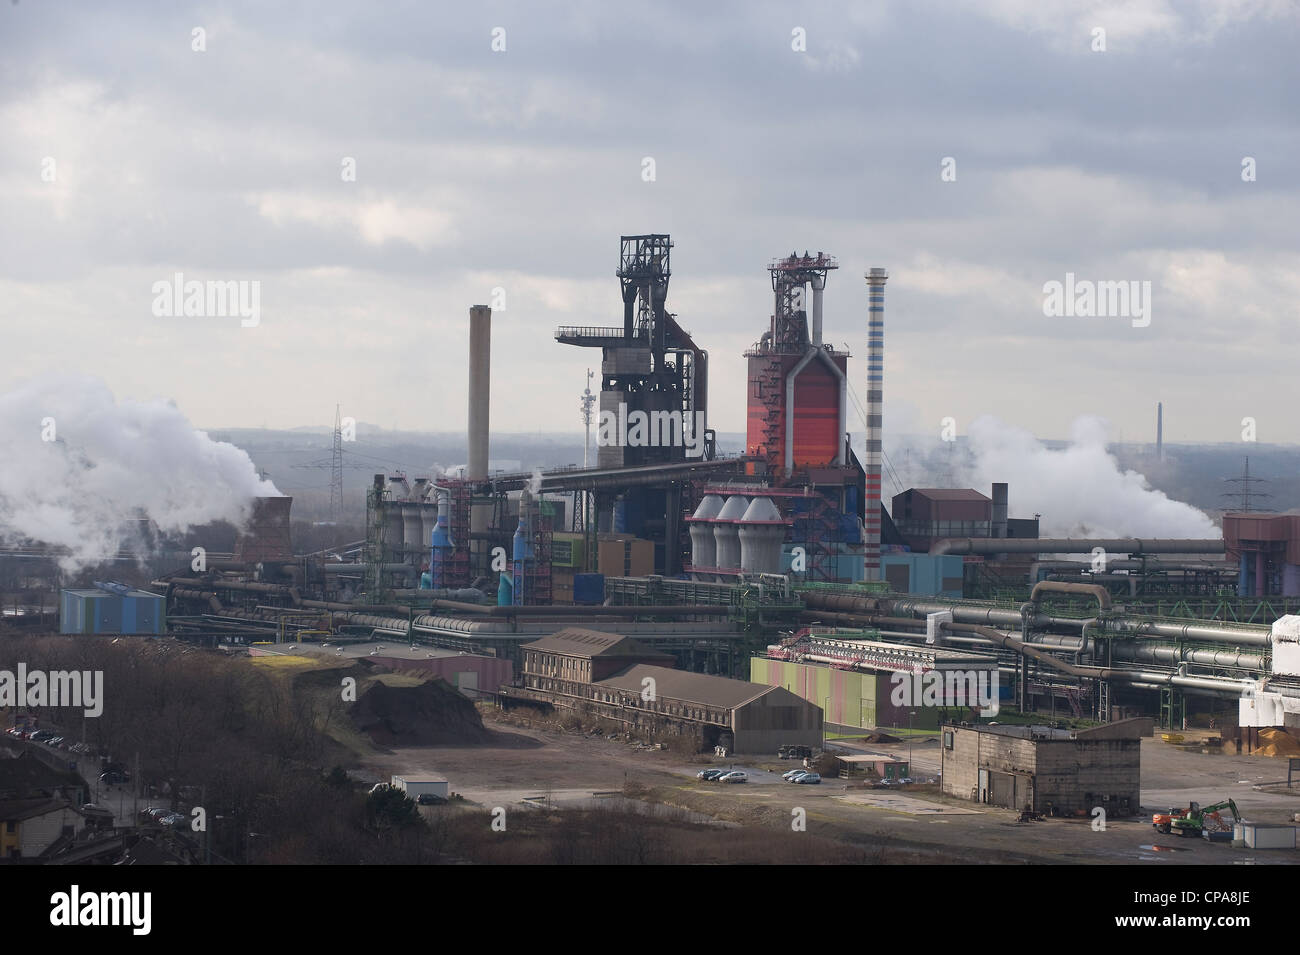 The smeltery of the ThyssenKrupp Steel AG, blast furnace 8, Duisburg, Germany - Stock Image